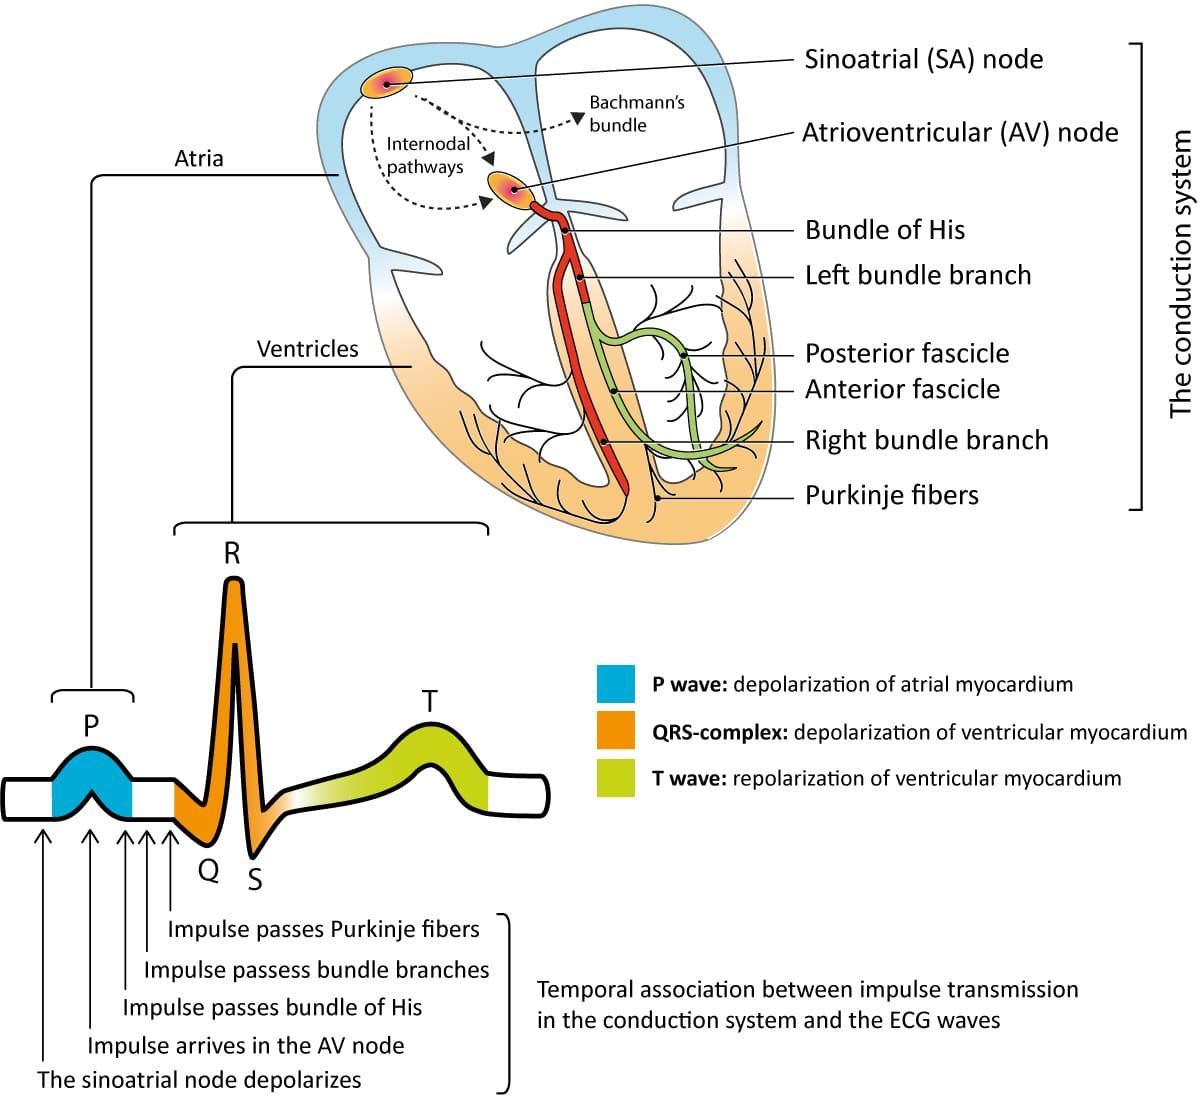 Cardiac action potential, electrical impulses, ECG waves & conduction system